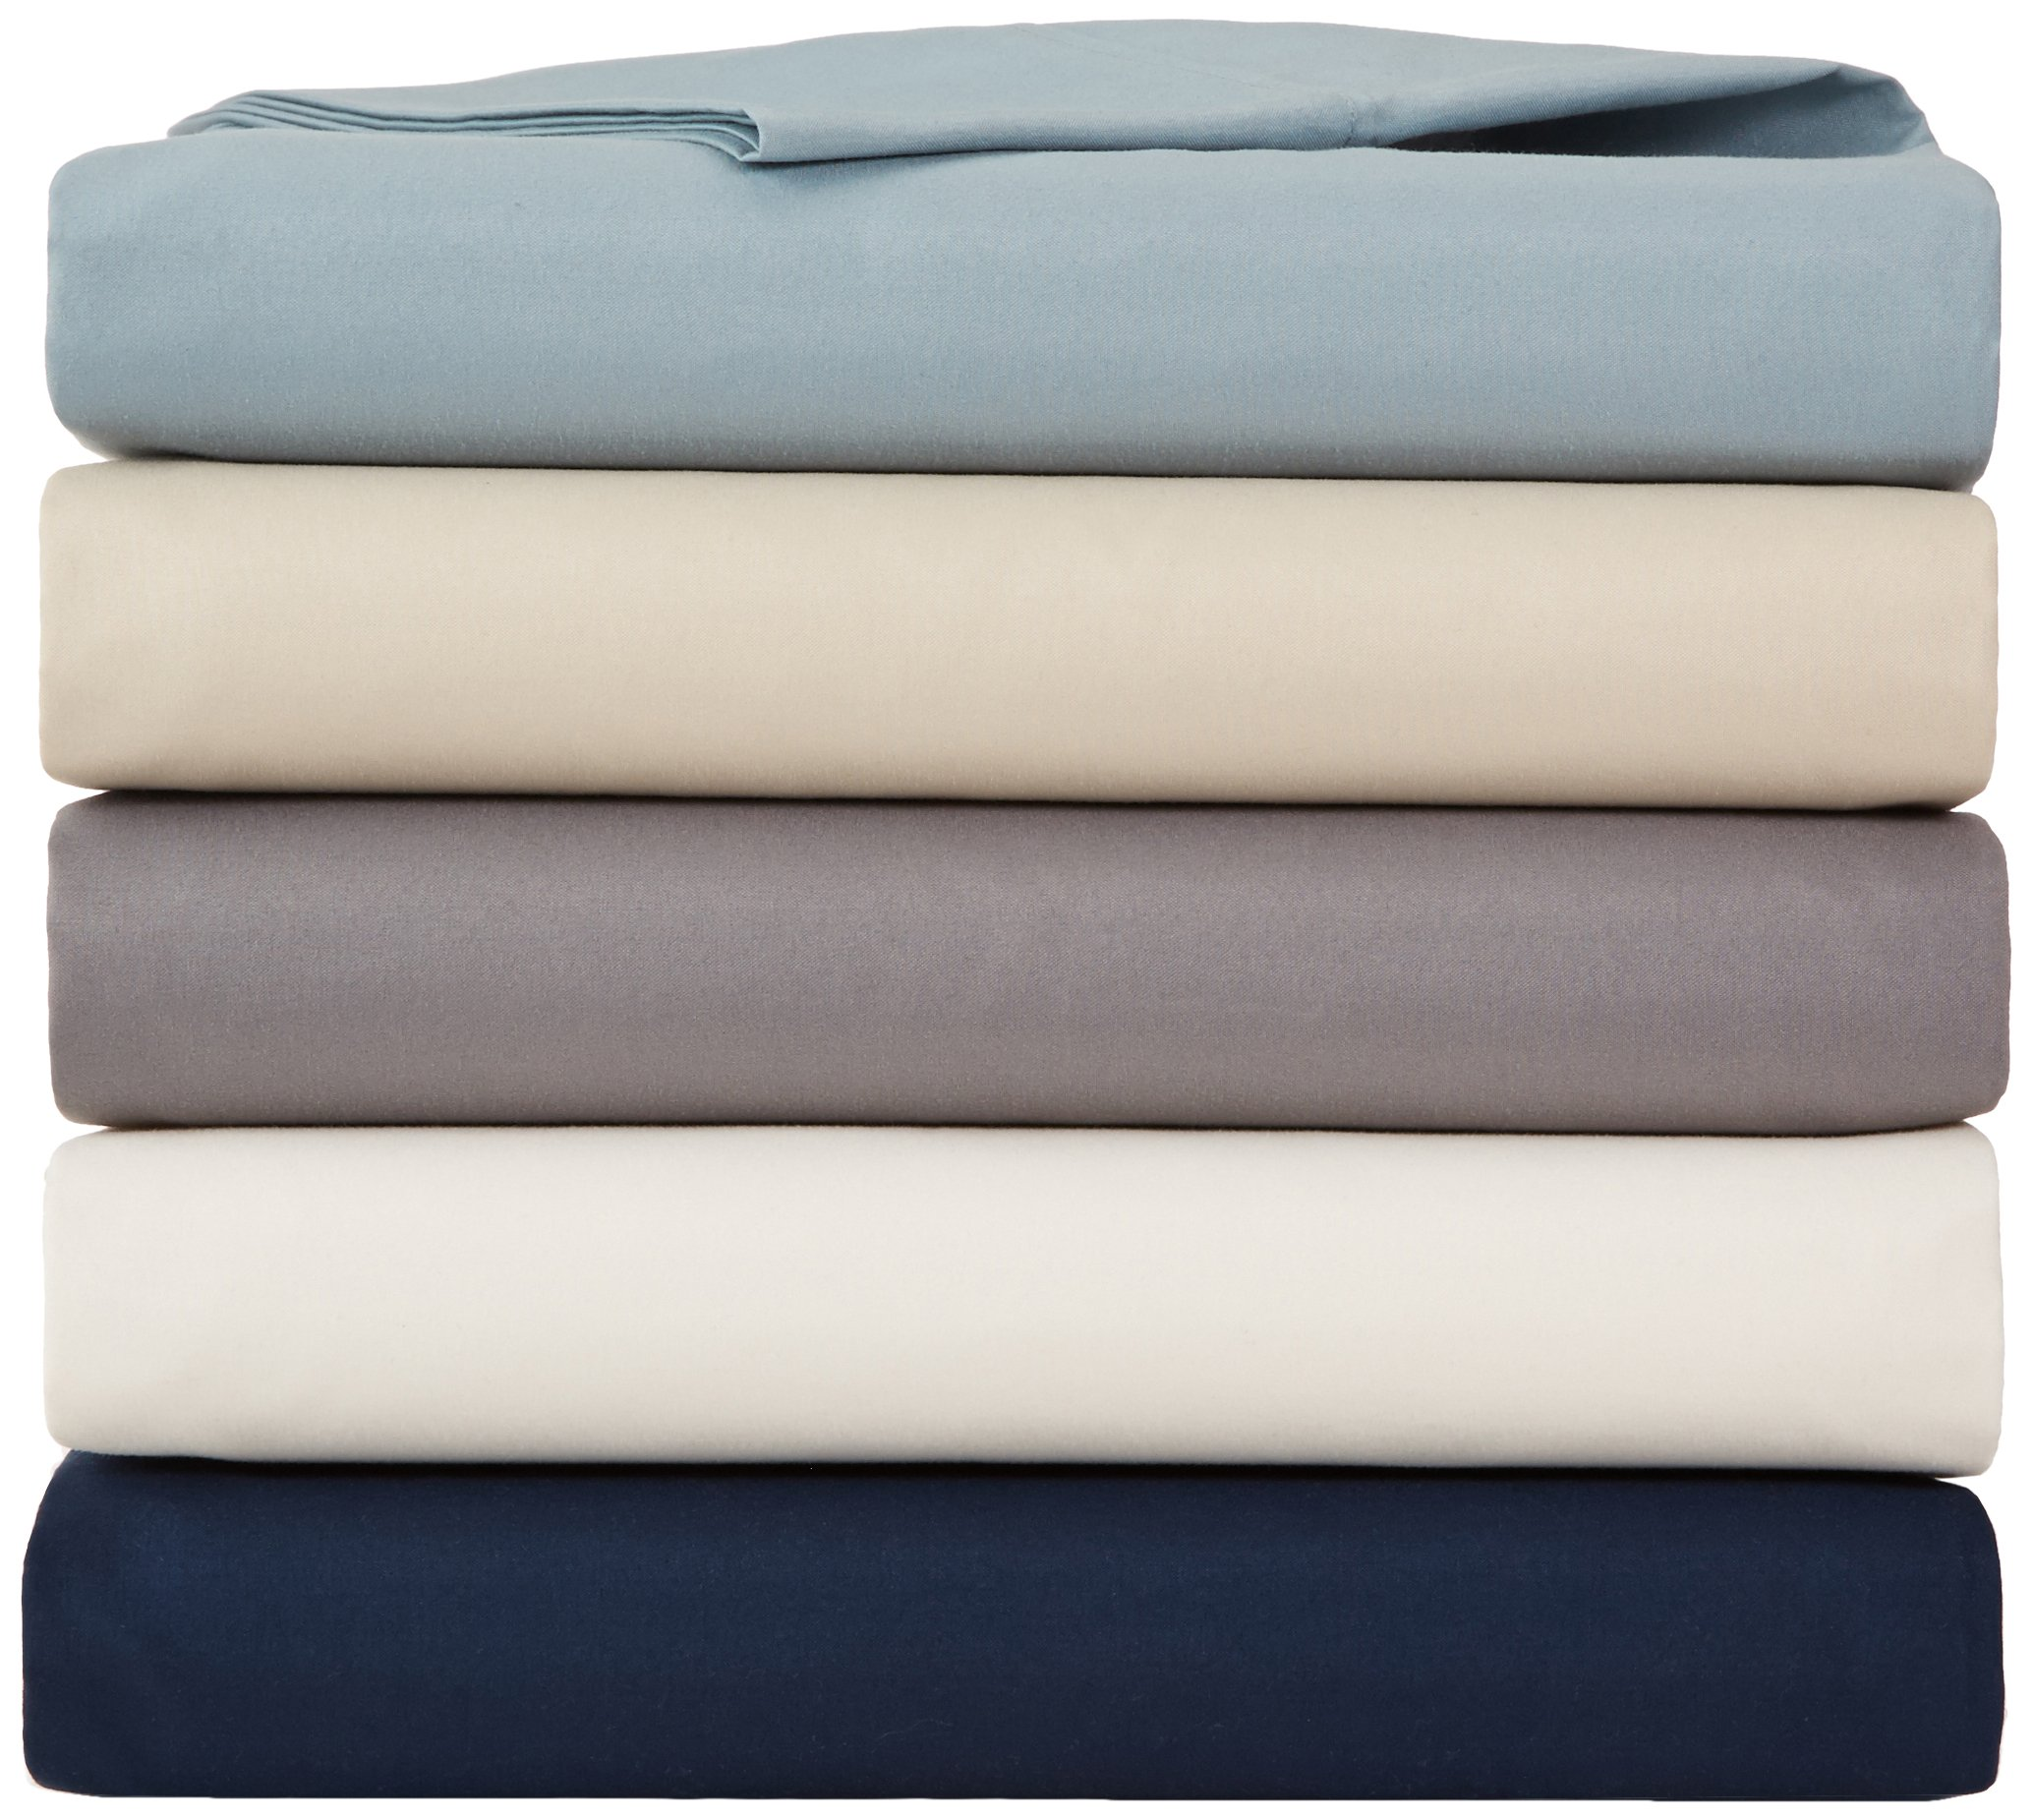 AmazonBasics Microfiber Sheet Set - Full, Spa Blue by AmazonBasics (Image #5)